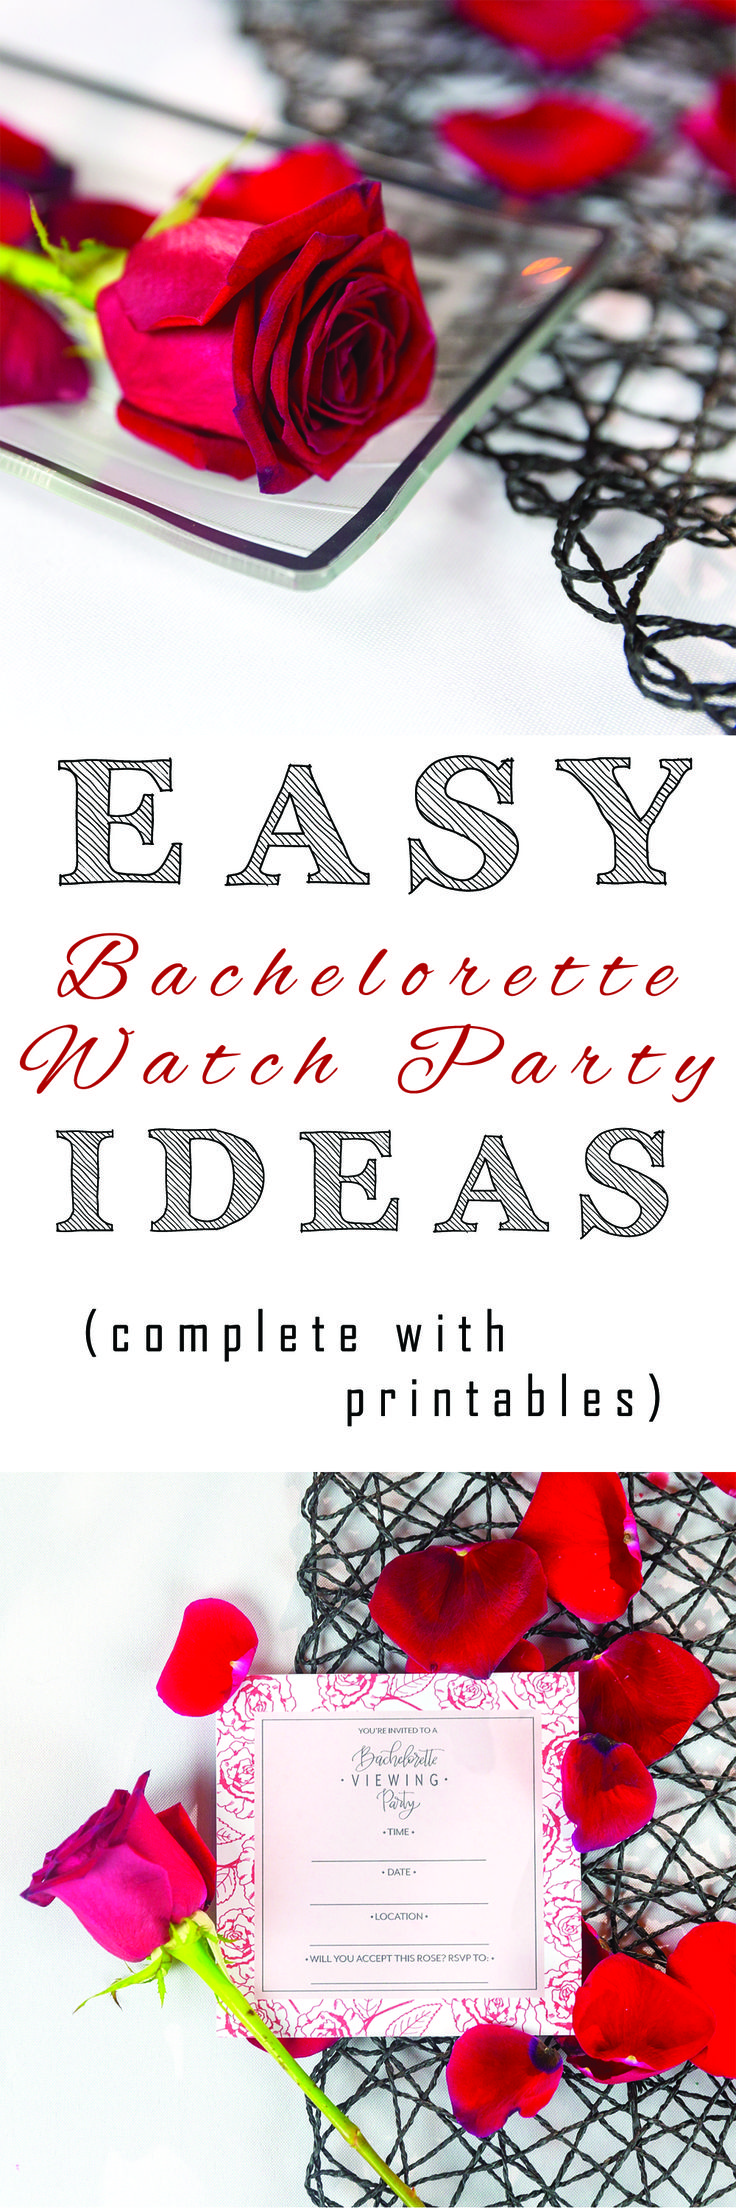 DIY, inspired, cheap, organize, build, project, tutorial, how to, quick, easy, fast, download, printables, checklist, ideas, recipe, decor, party planning, girls night, tips, Bachelorette viewing party, Bachelorette premiere, Monday night, Bachelor Night, Bachelor Nation